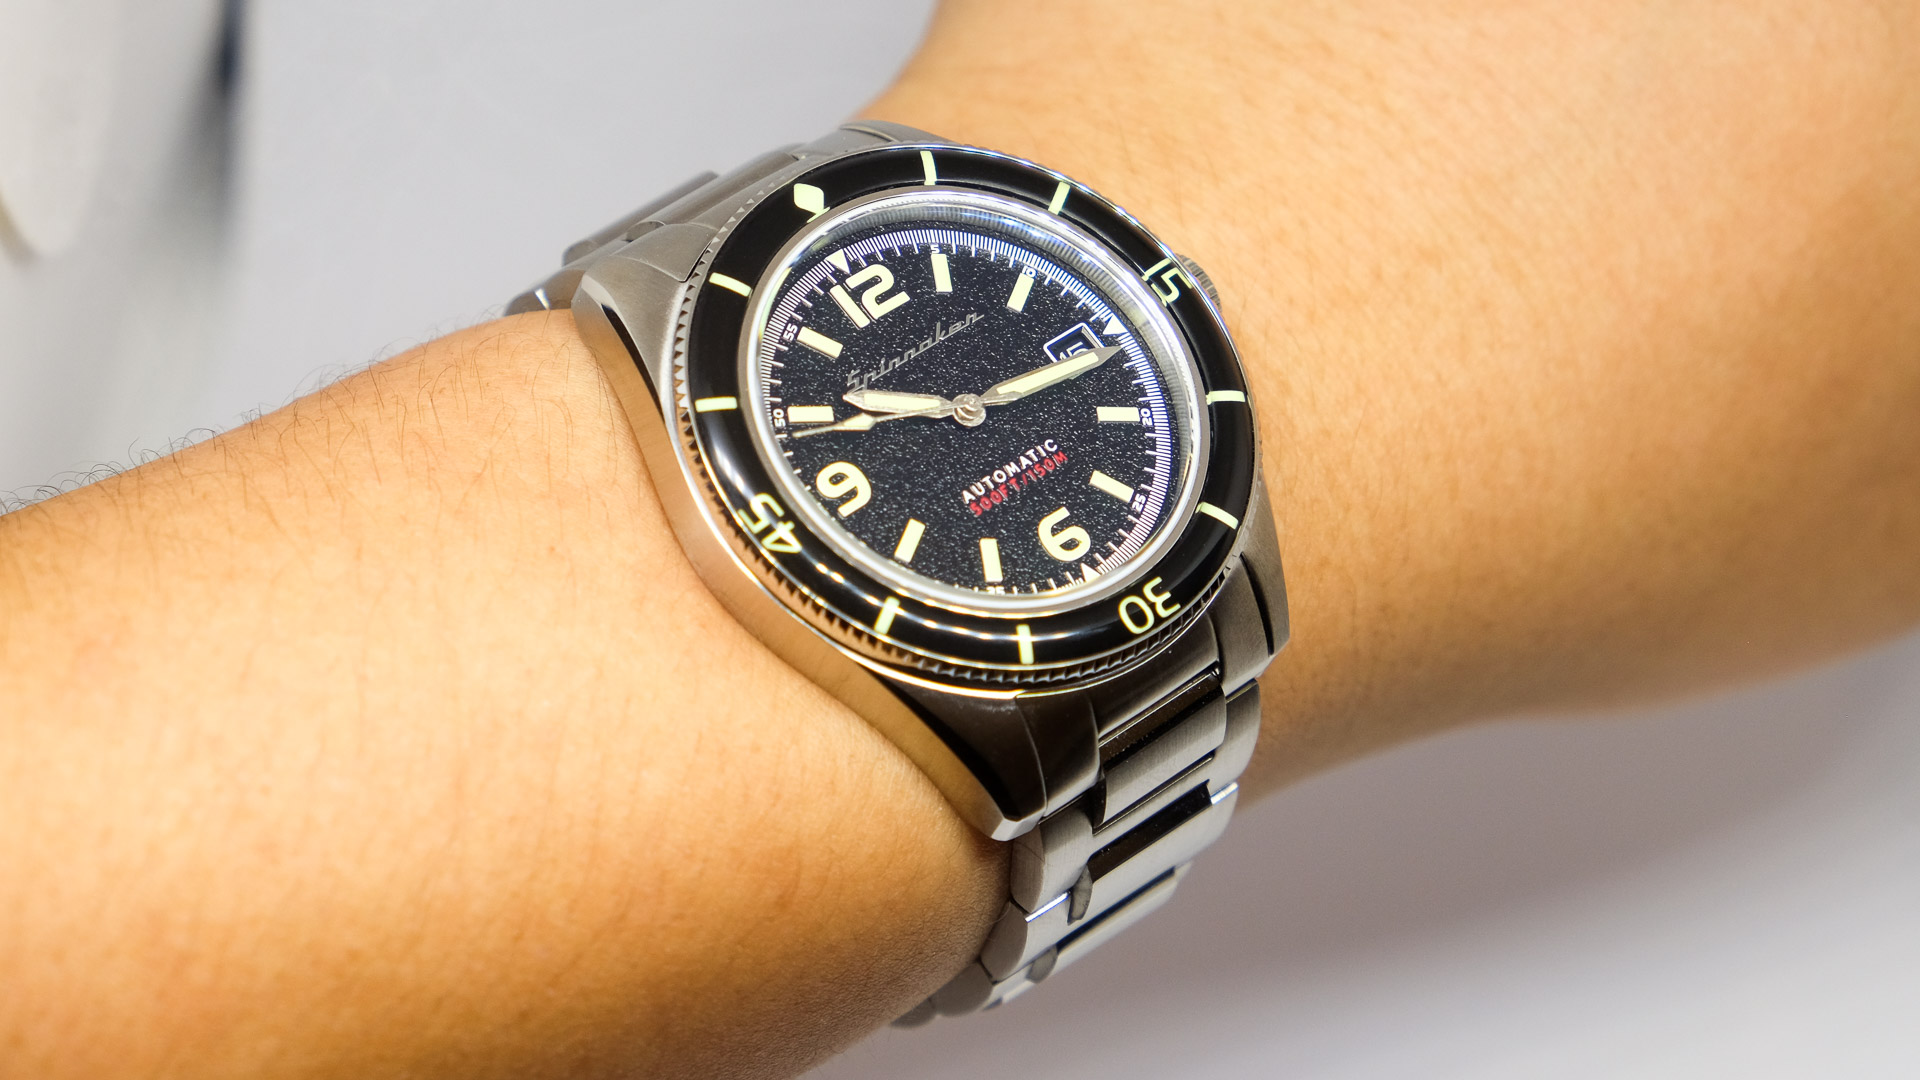 Spinnaker Fleuss SP-5055-44: An affordable entry point into the stainless steel sports watch game